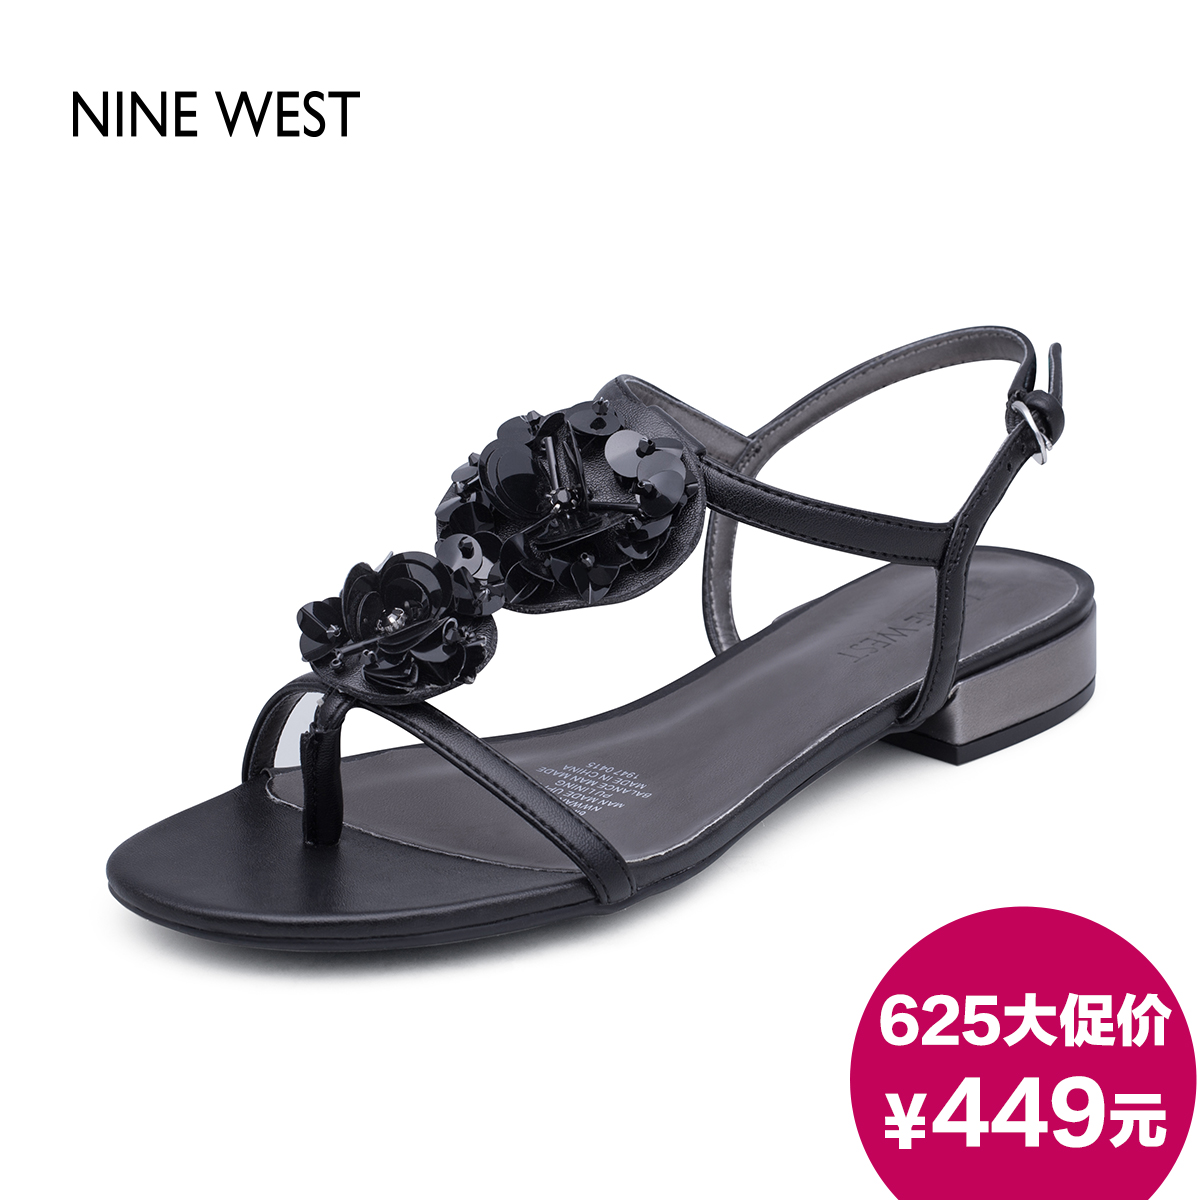 Босоножки Nine West 30103645 Ninewest 2015 туфли nine west ninewest followme 2015